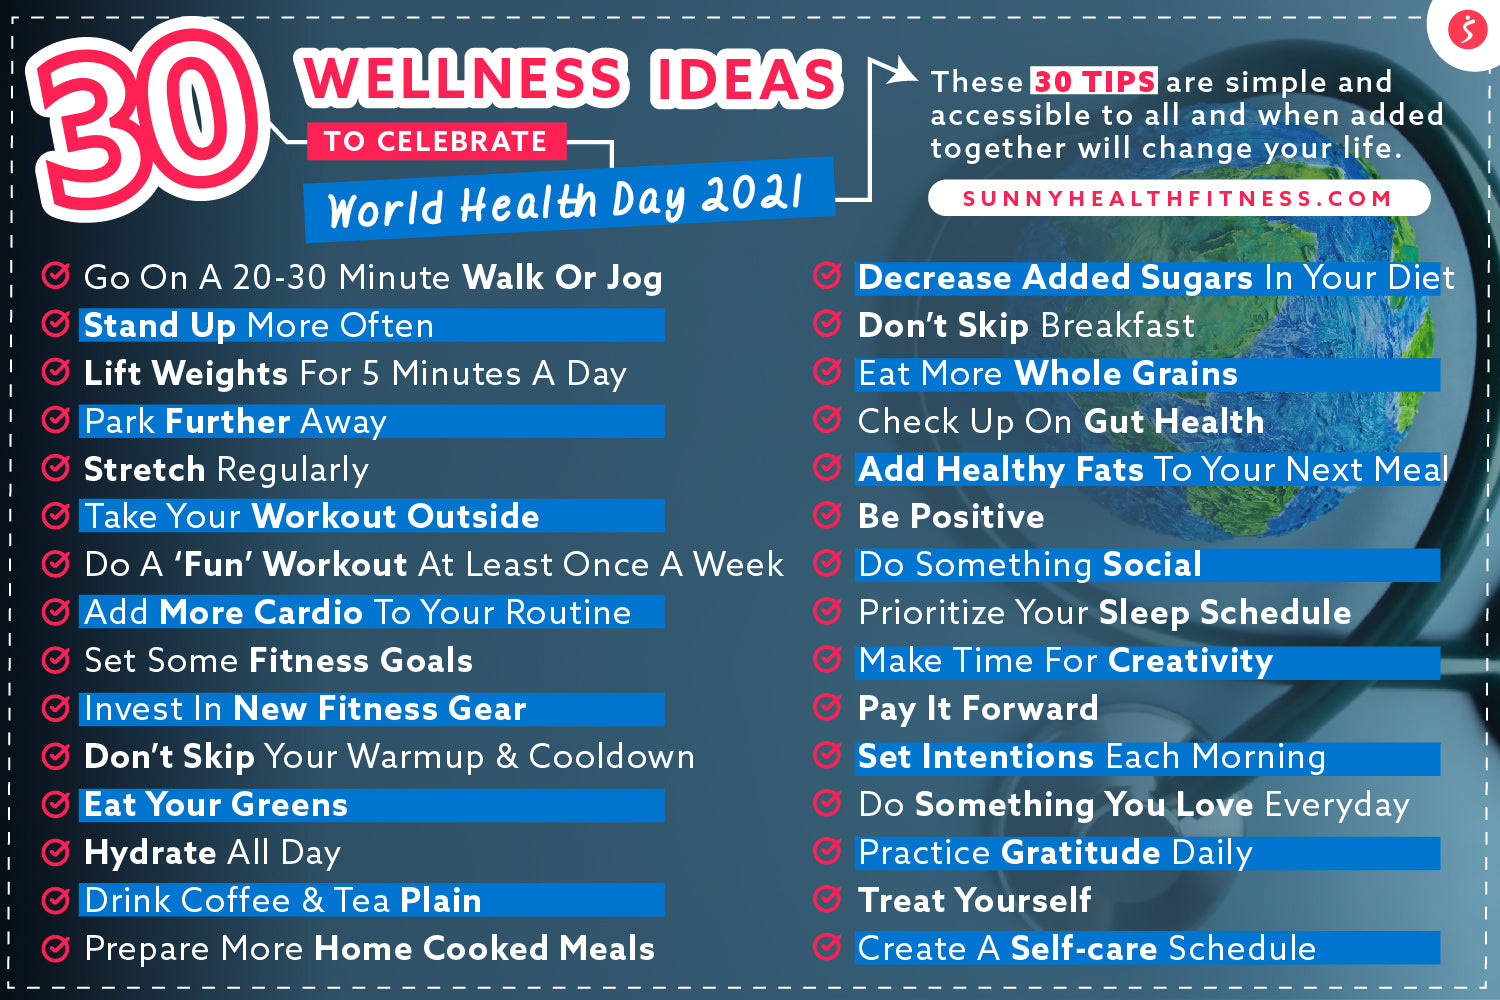 Celebrate World Health Day with Top 30 Healthy Tips